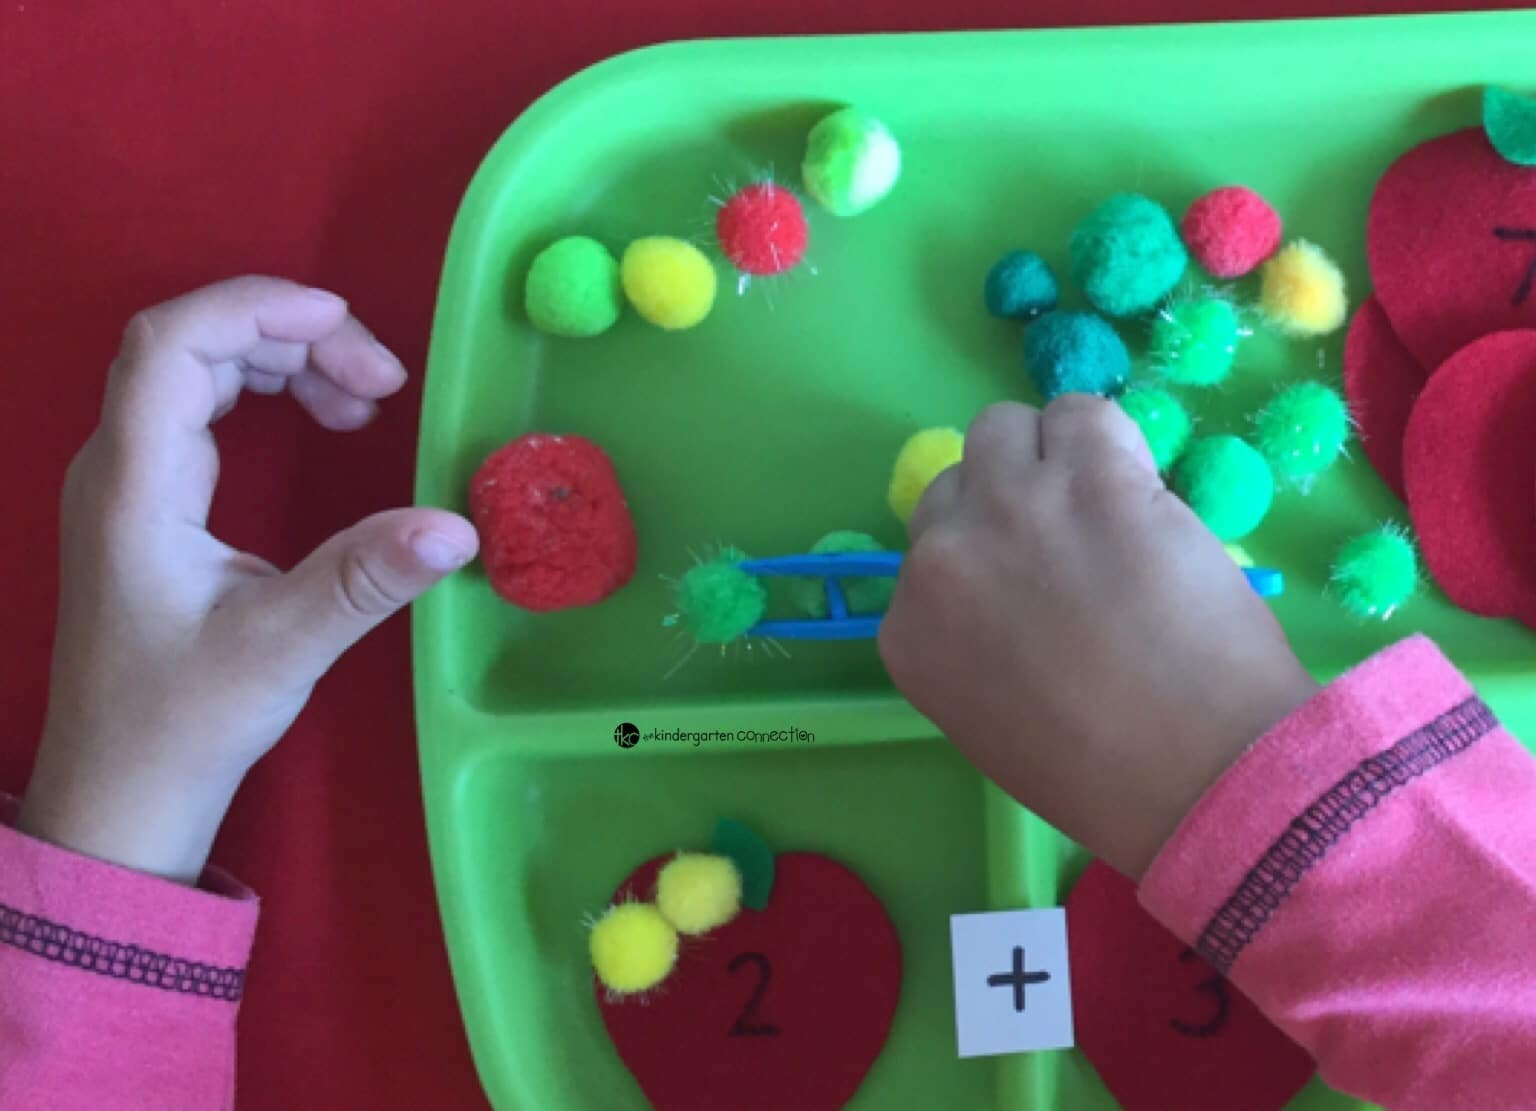 Here is a fun Apple themed hands-on math idea for you: apple sums! Make numbered felt apples and use pompoms as counters to work on sums plus fine motor skills!